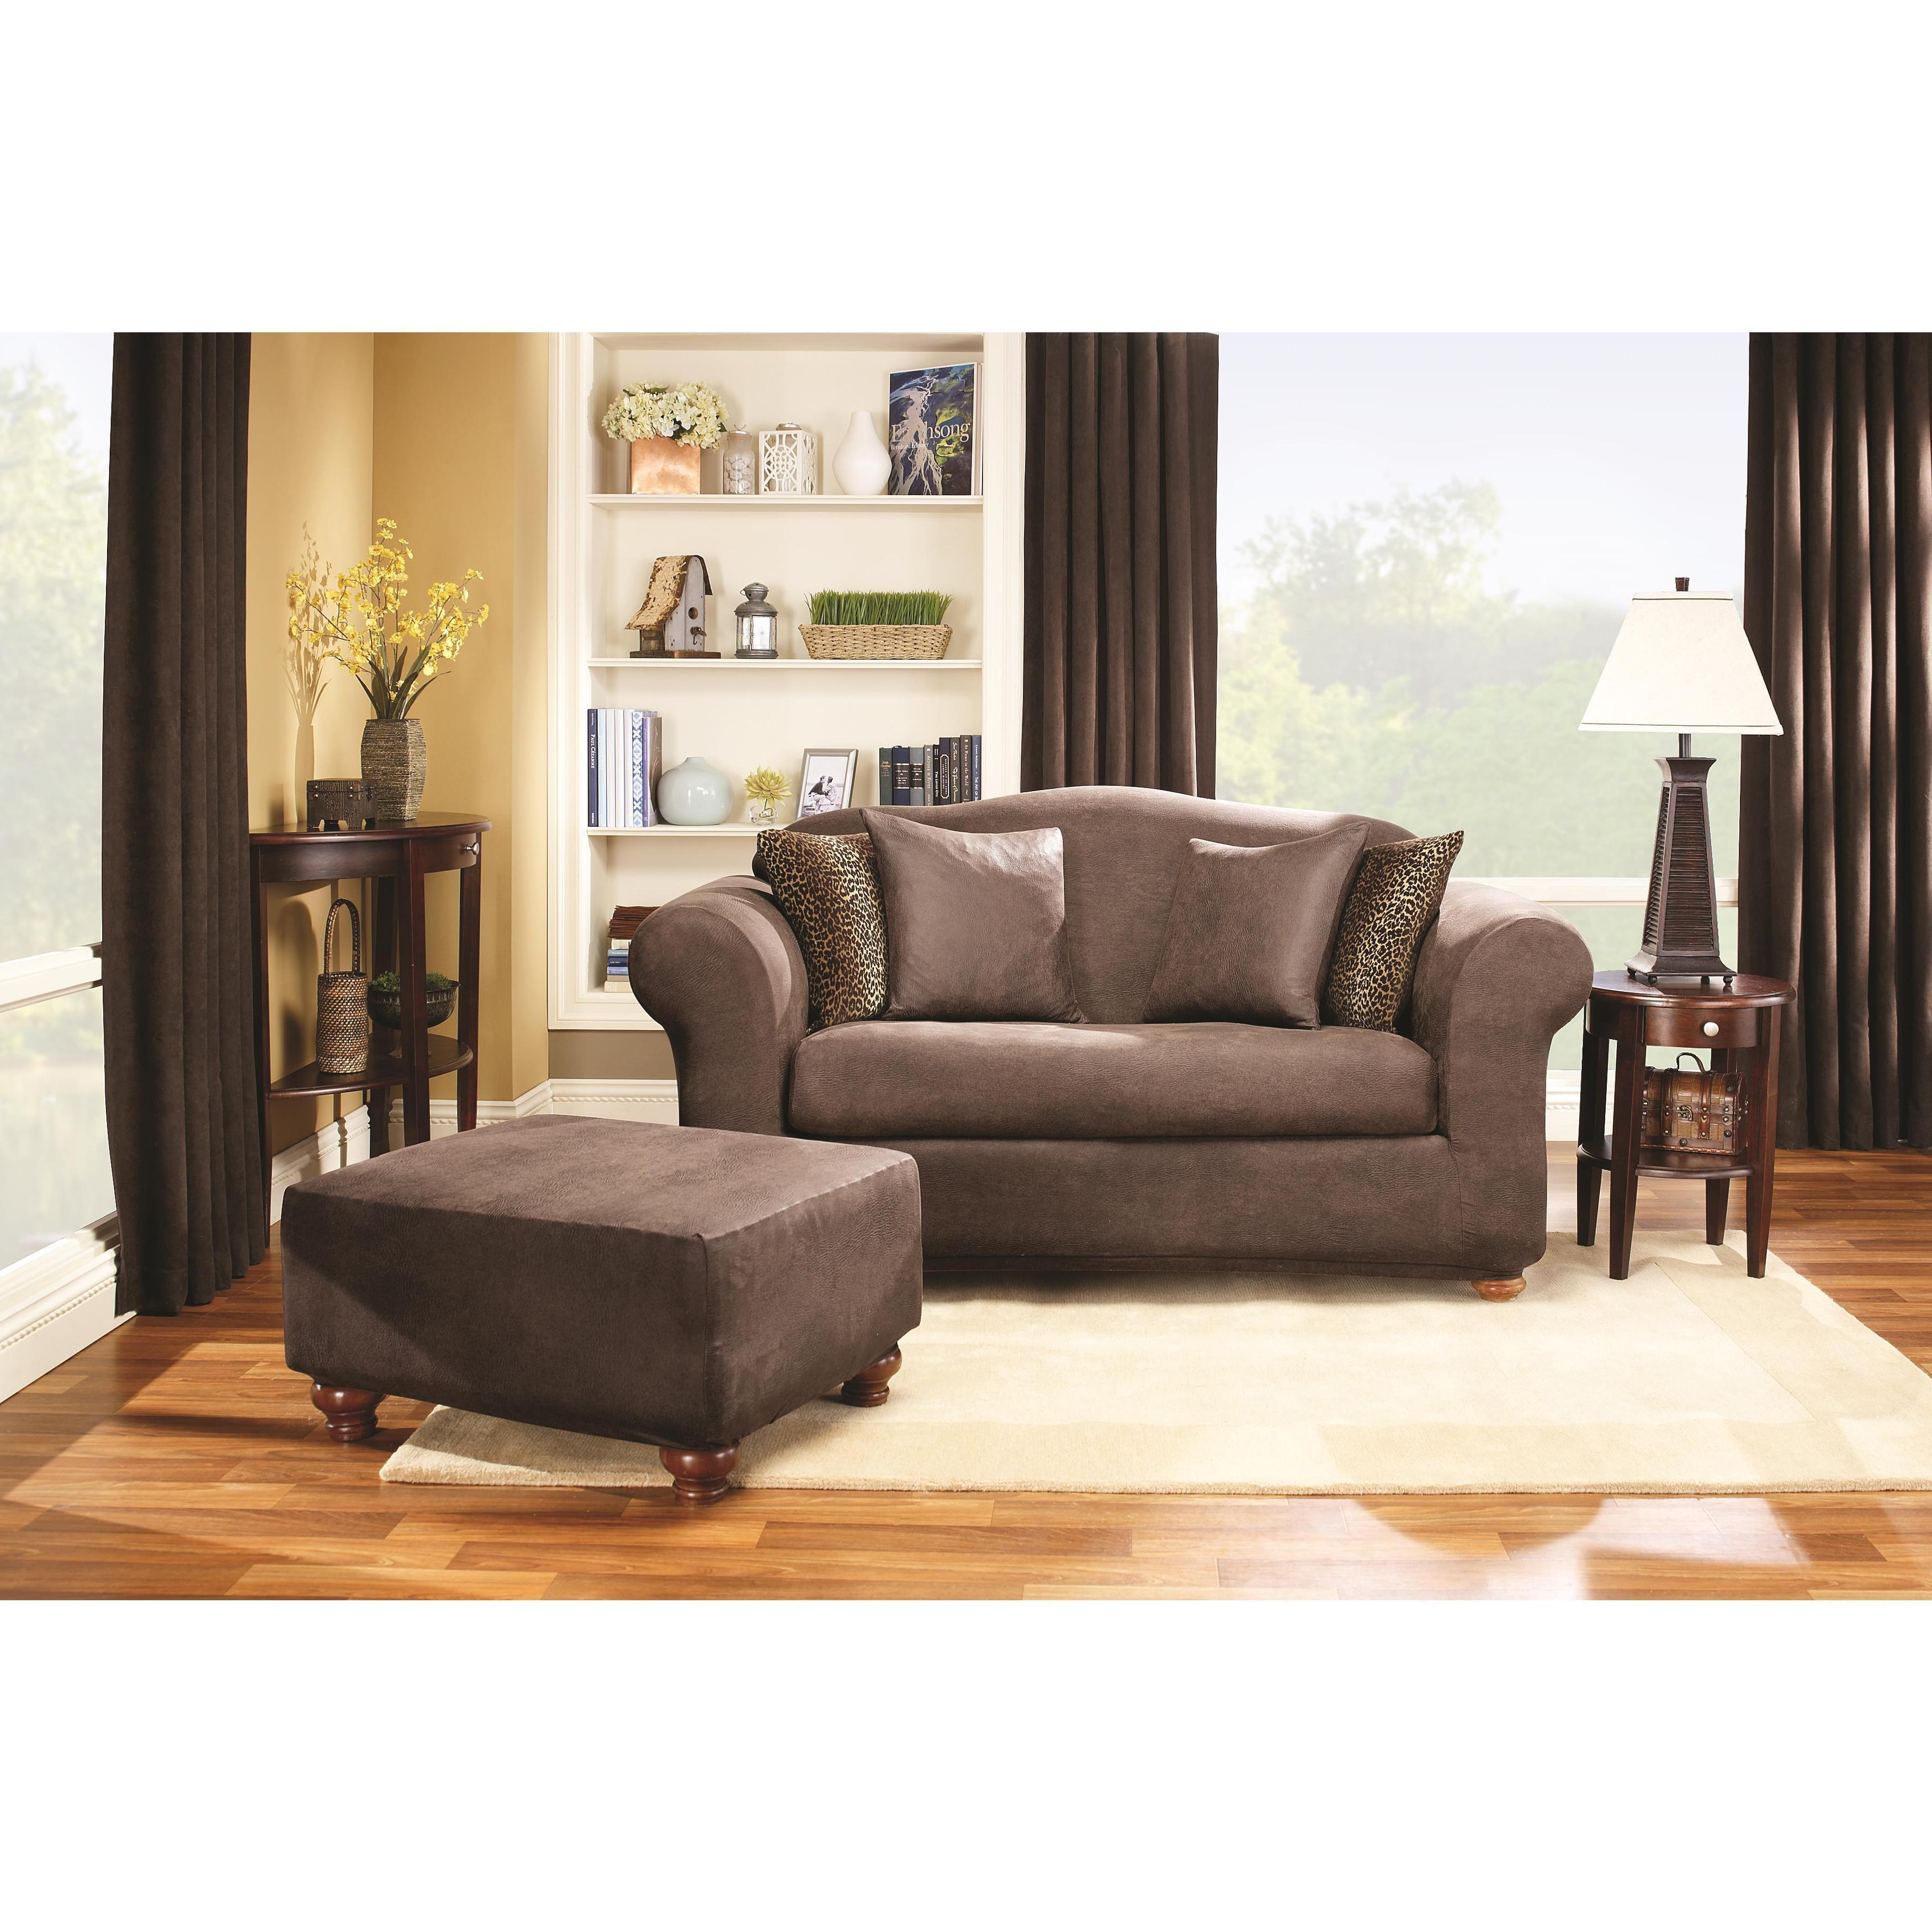 Merveilleux Shop Sure Fit Stretch Faux Leather 2 Piece T Cushion Sofa Slipcover   Free  Shipping Today   Overstock.com   6470288